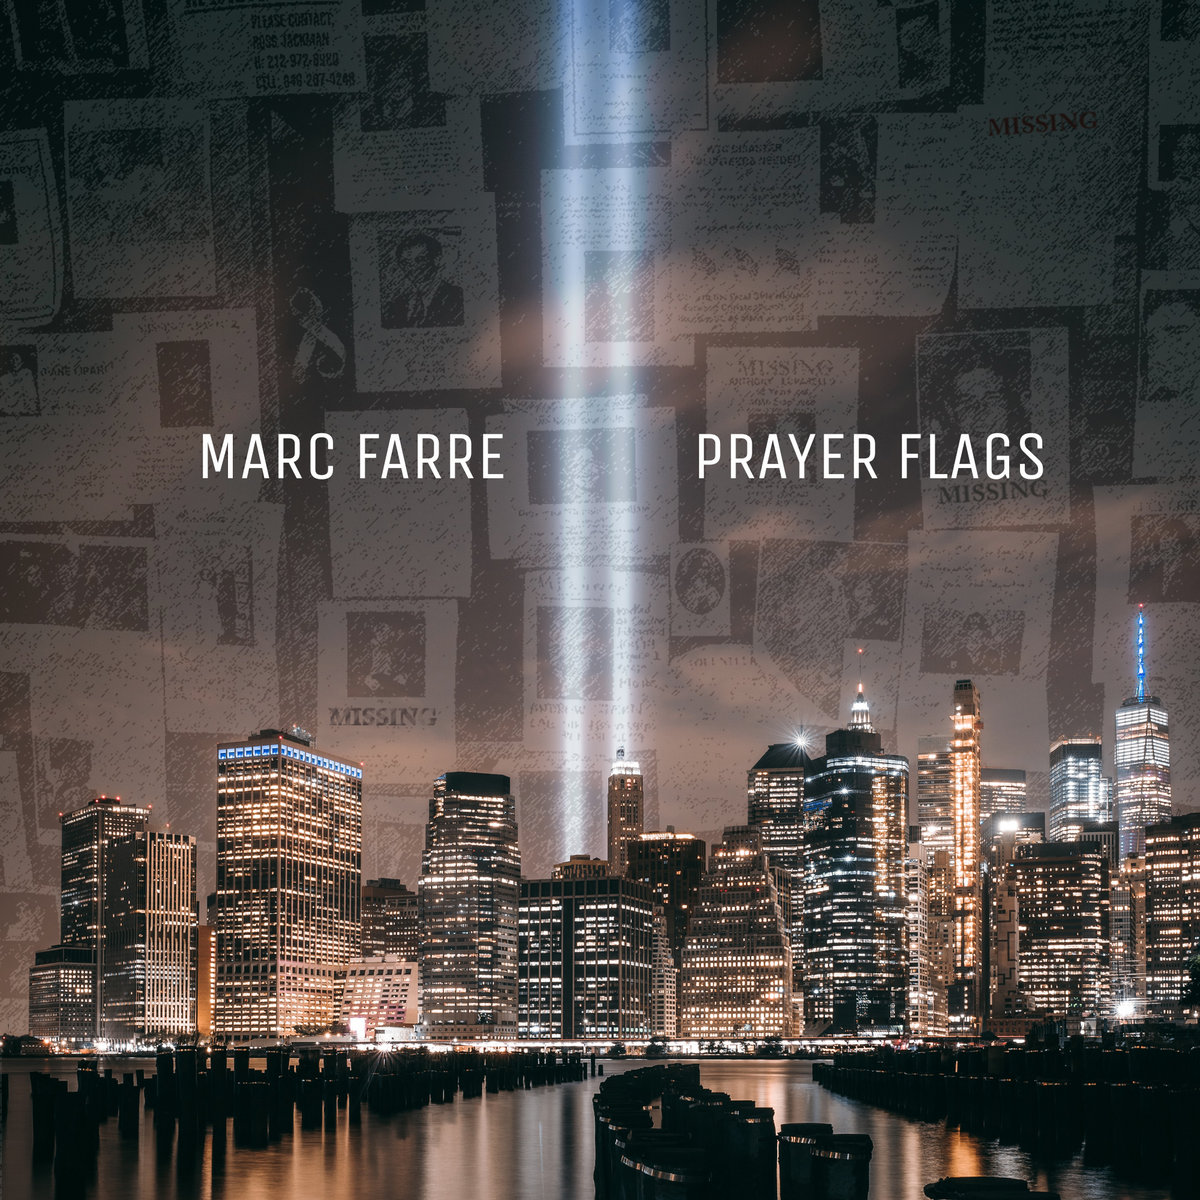 Prayer Flags (9/11 tribute song) by Marc Farre